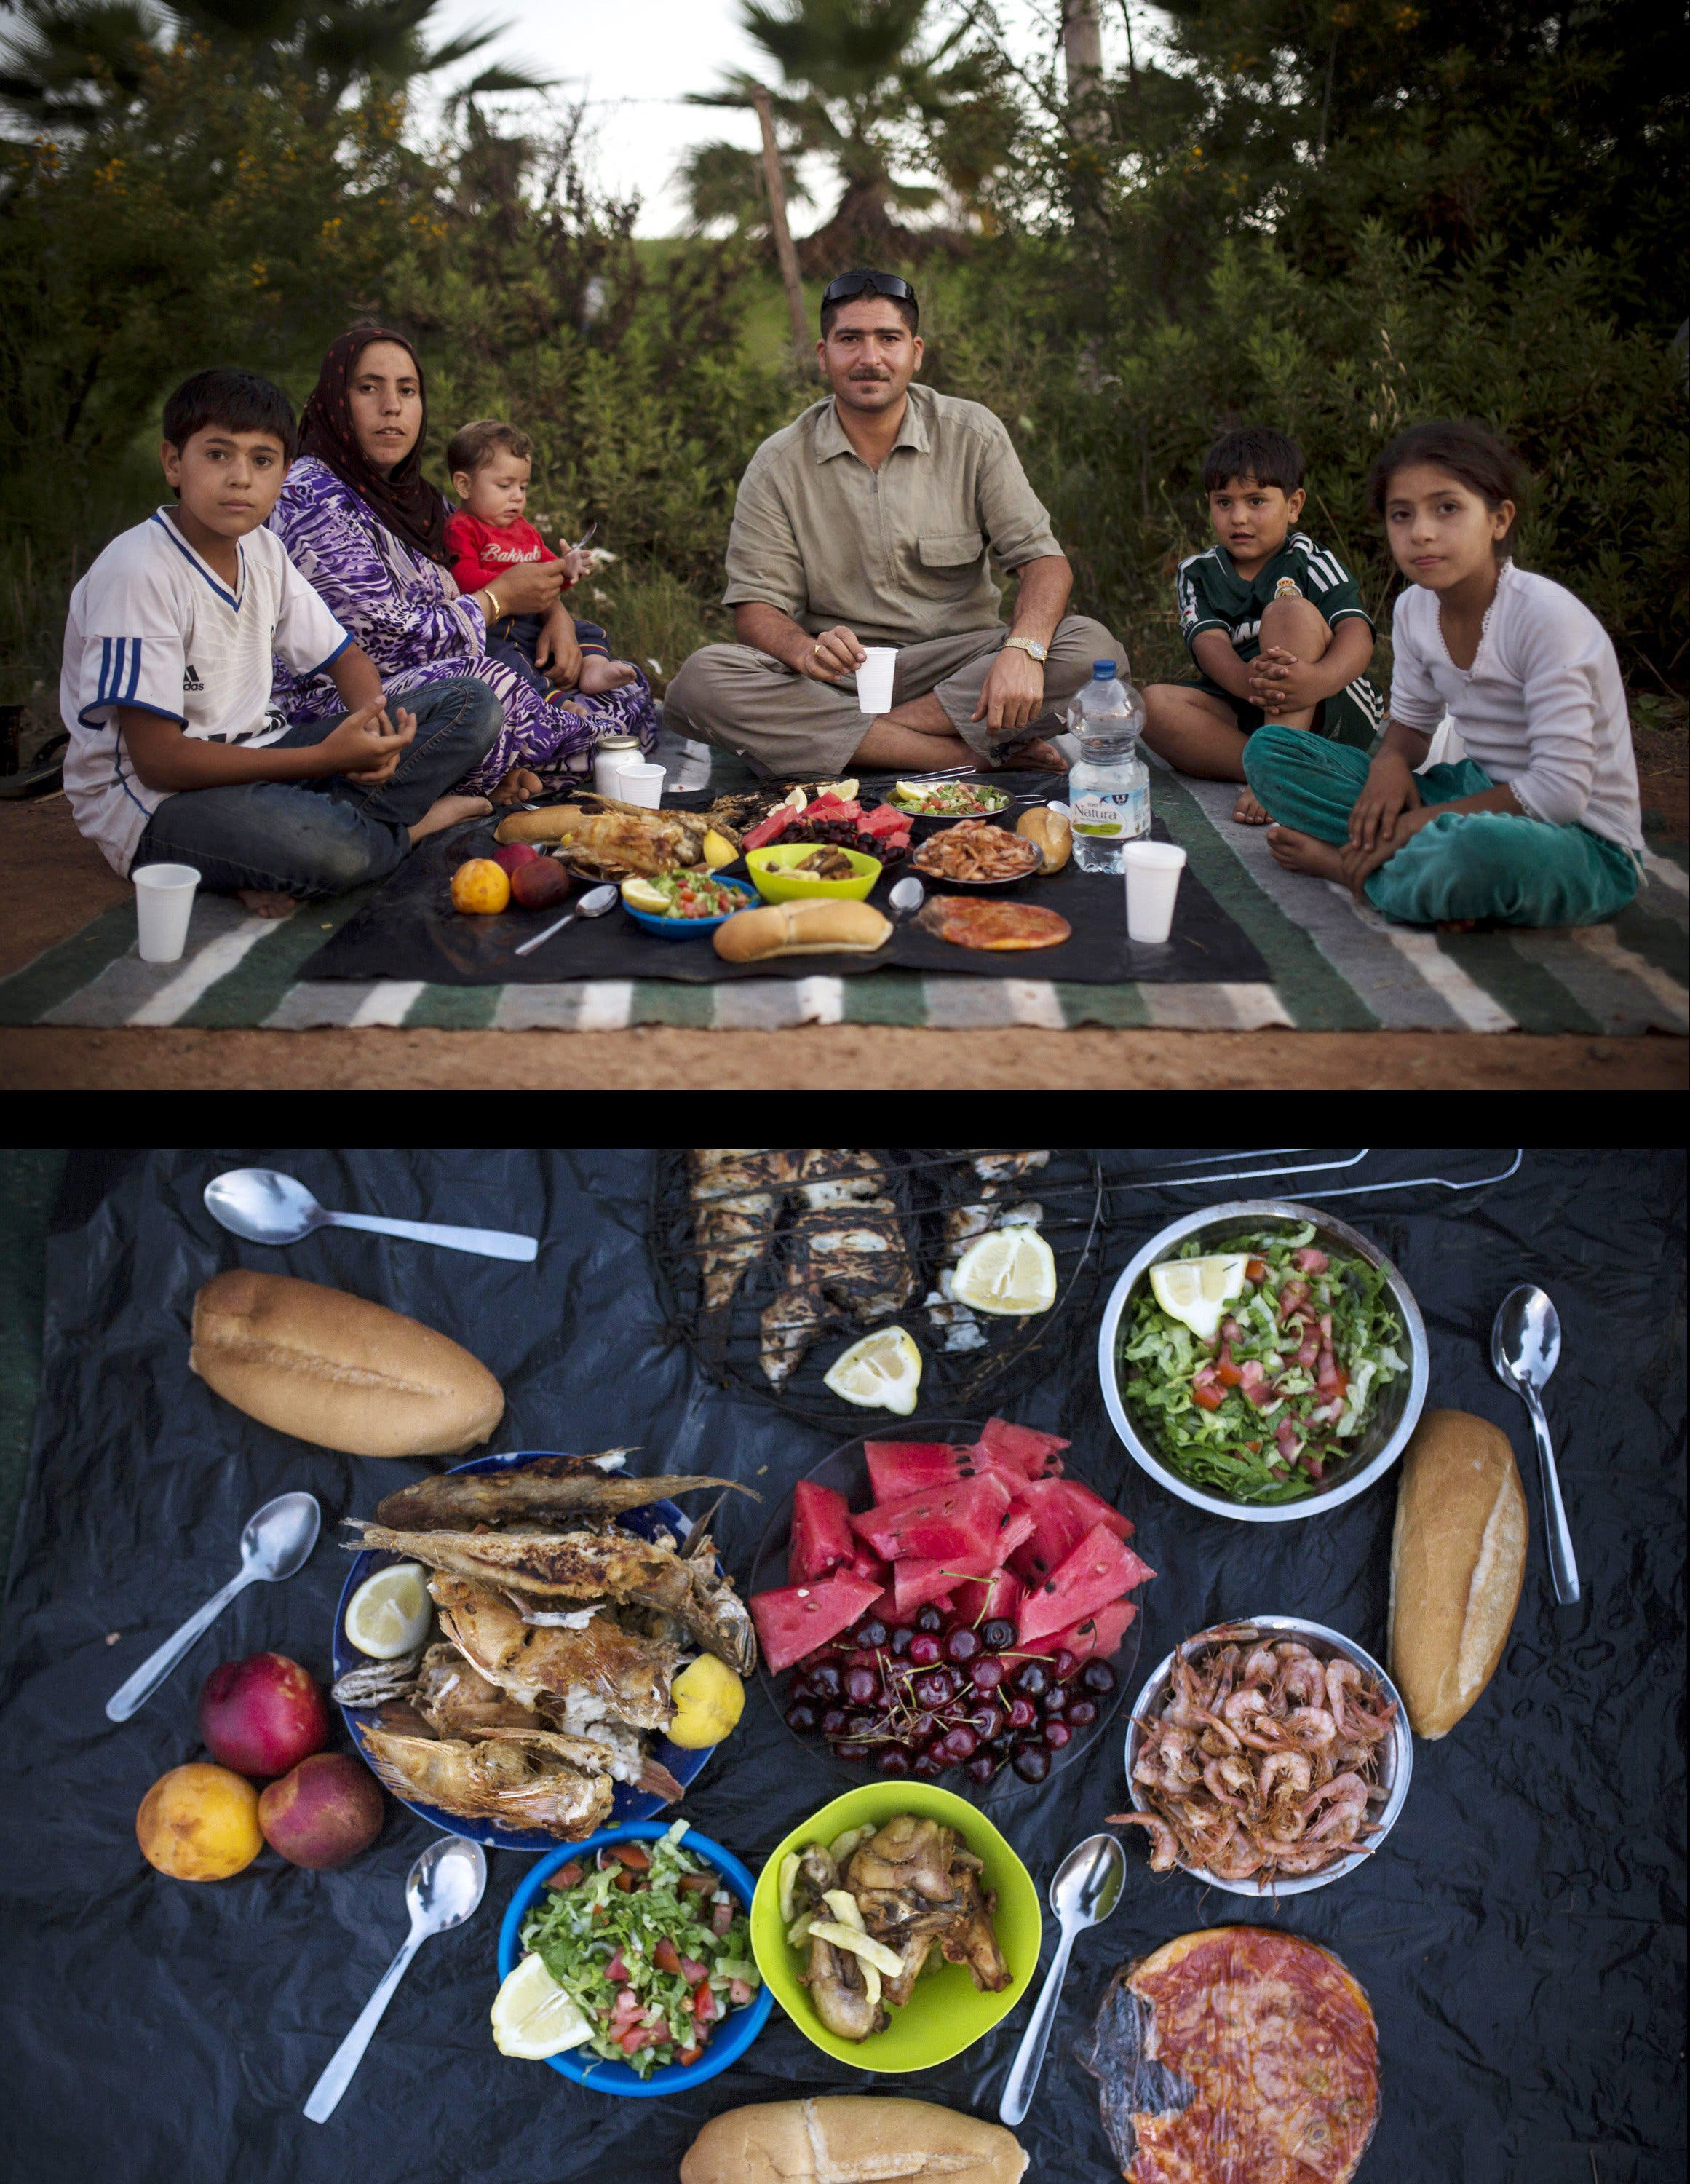 A Syrian refugee family waiting to break their fast, top, and their meal, bottom, during the holy month of Ramadan, next to the Temporary Centre for Immigrants in the Spanish enclave of Melilla, Spain. (File photo: AP)